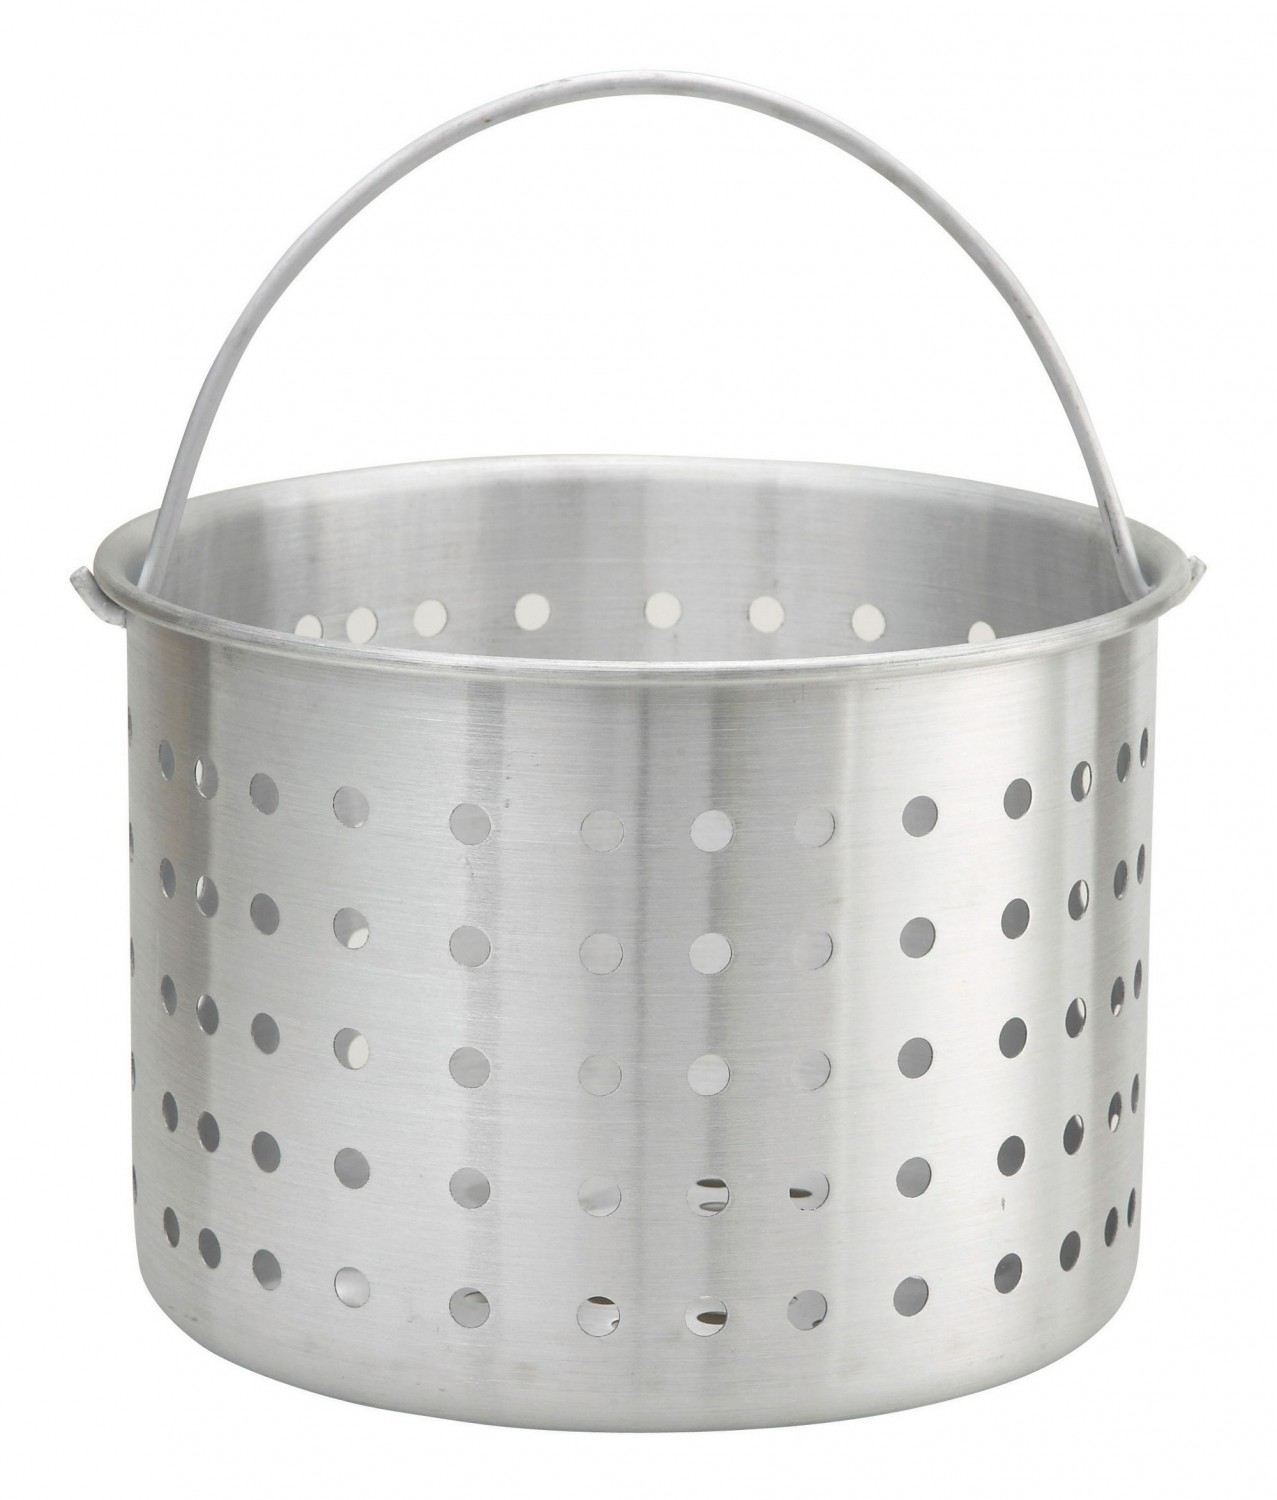 Winco ALSB-32 Steamer Basket fits Stock Pot 32 Qt.